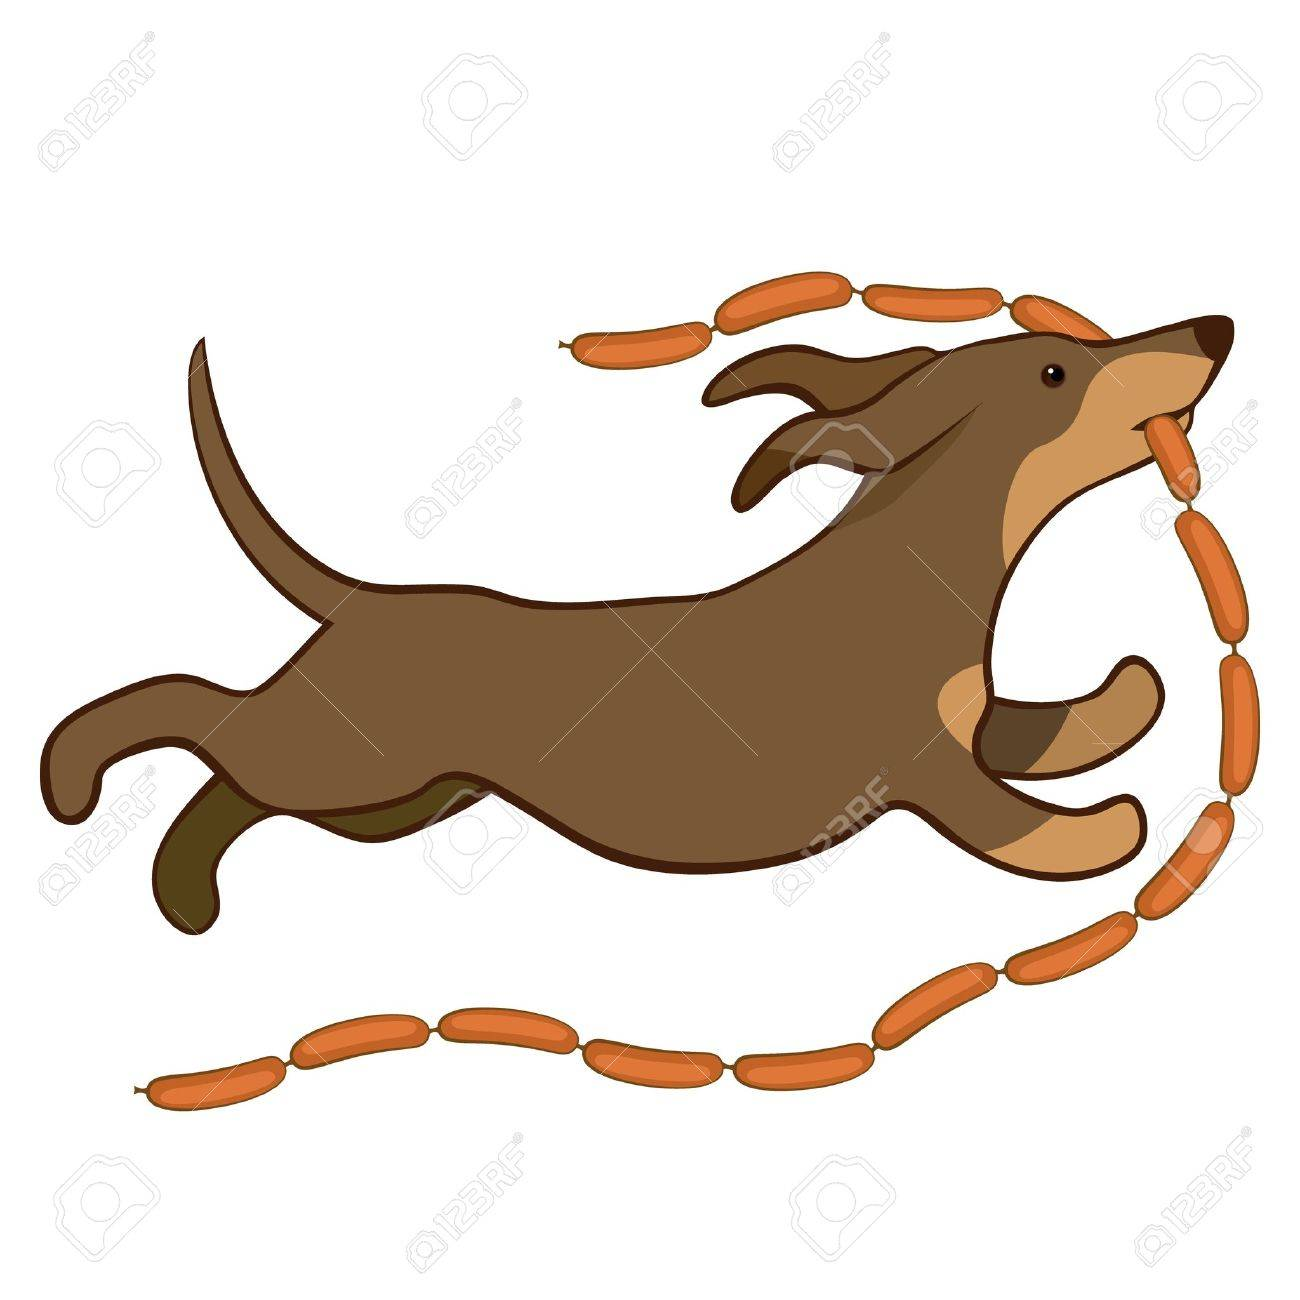 lucky dog runing with sausages vector illustration Stock Vector - 11142800